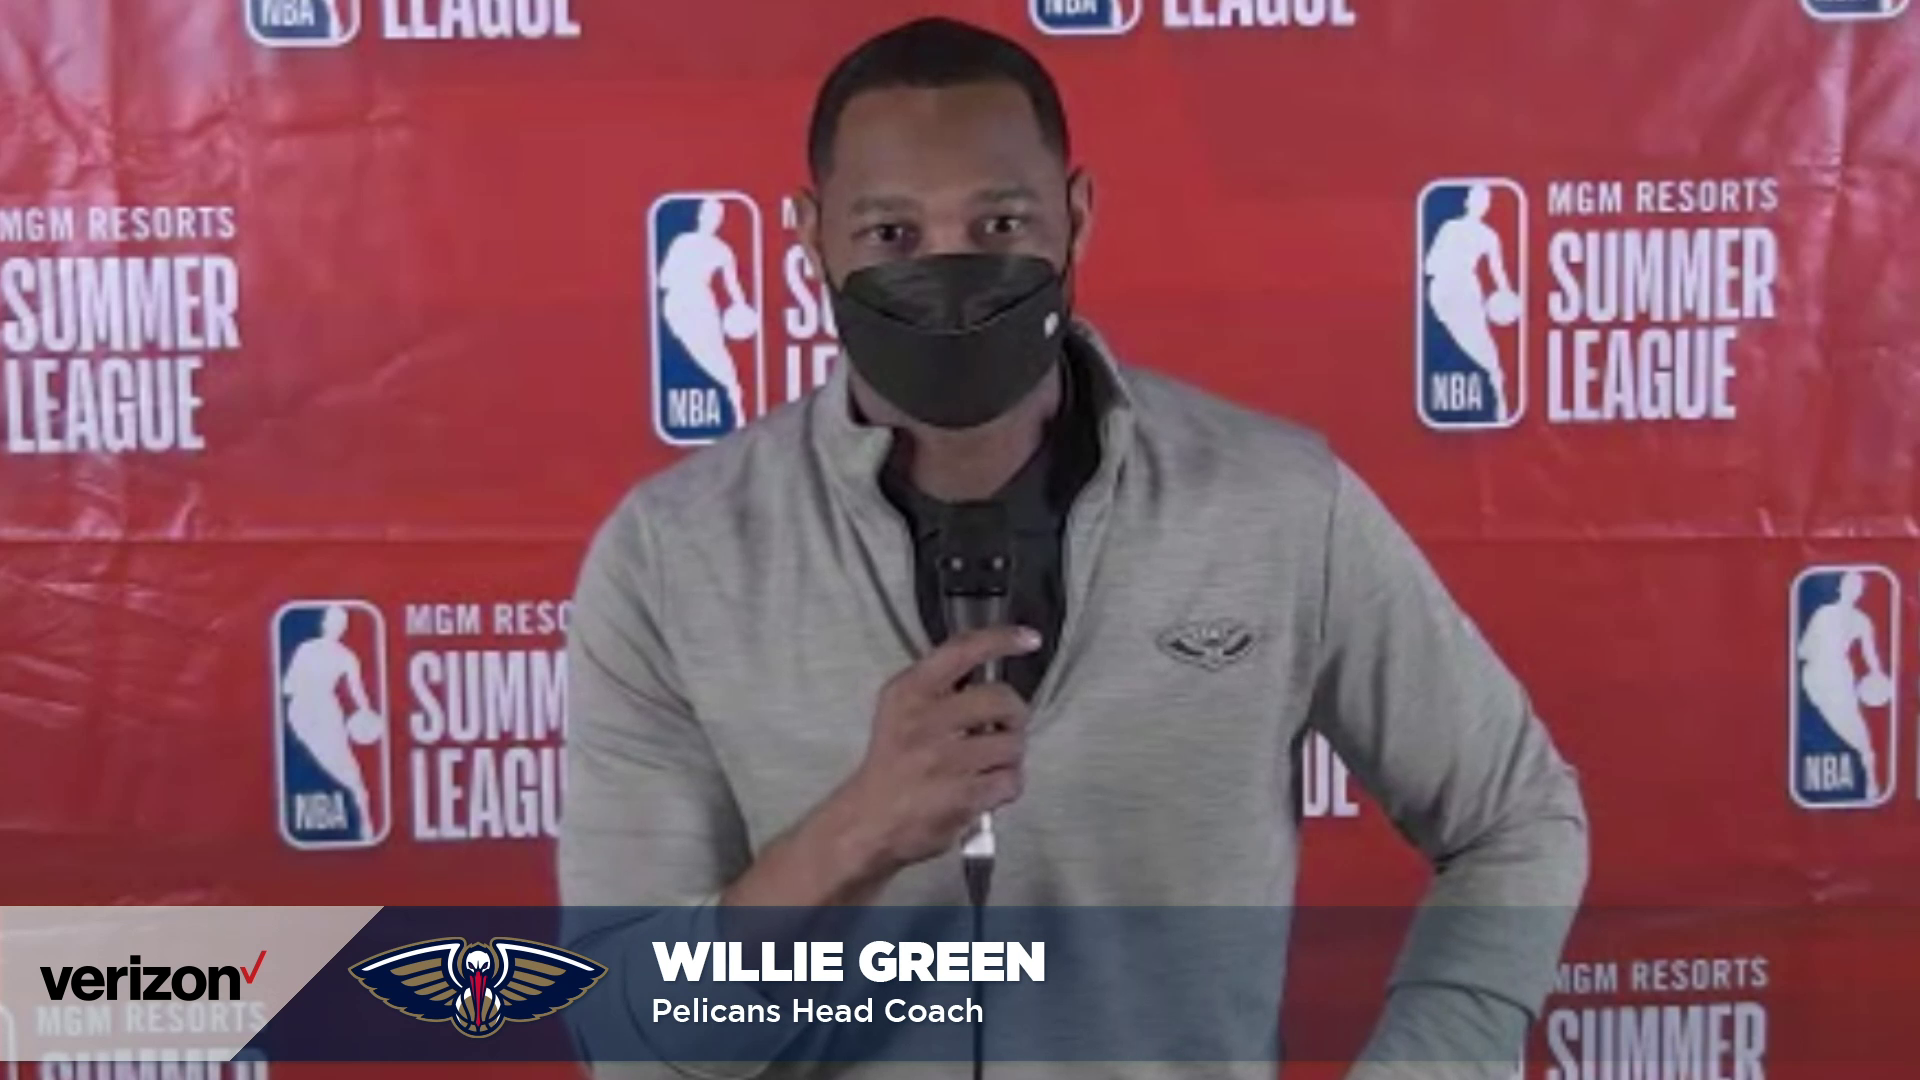 Pelicans-Warriors Postgame: Willie Green on going undefeated in 2021 NBA Summer League